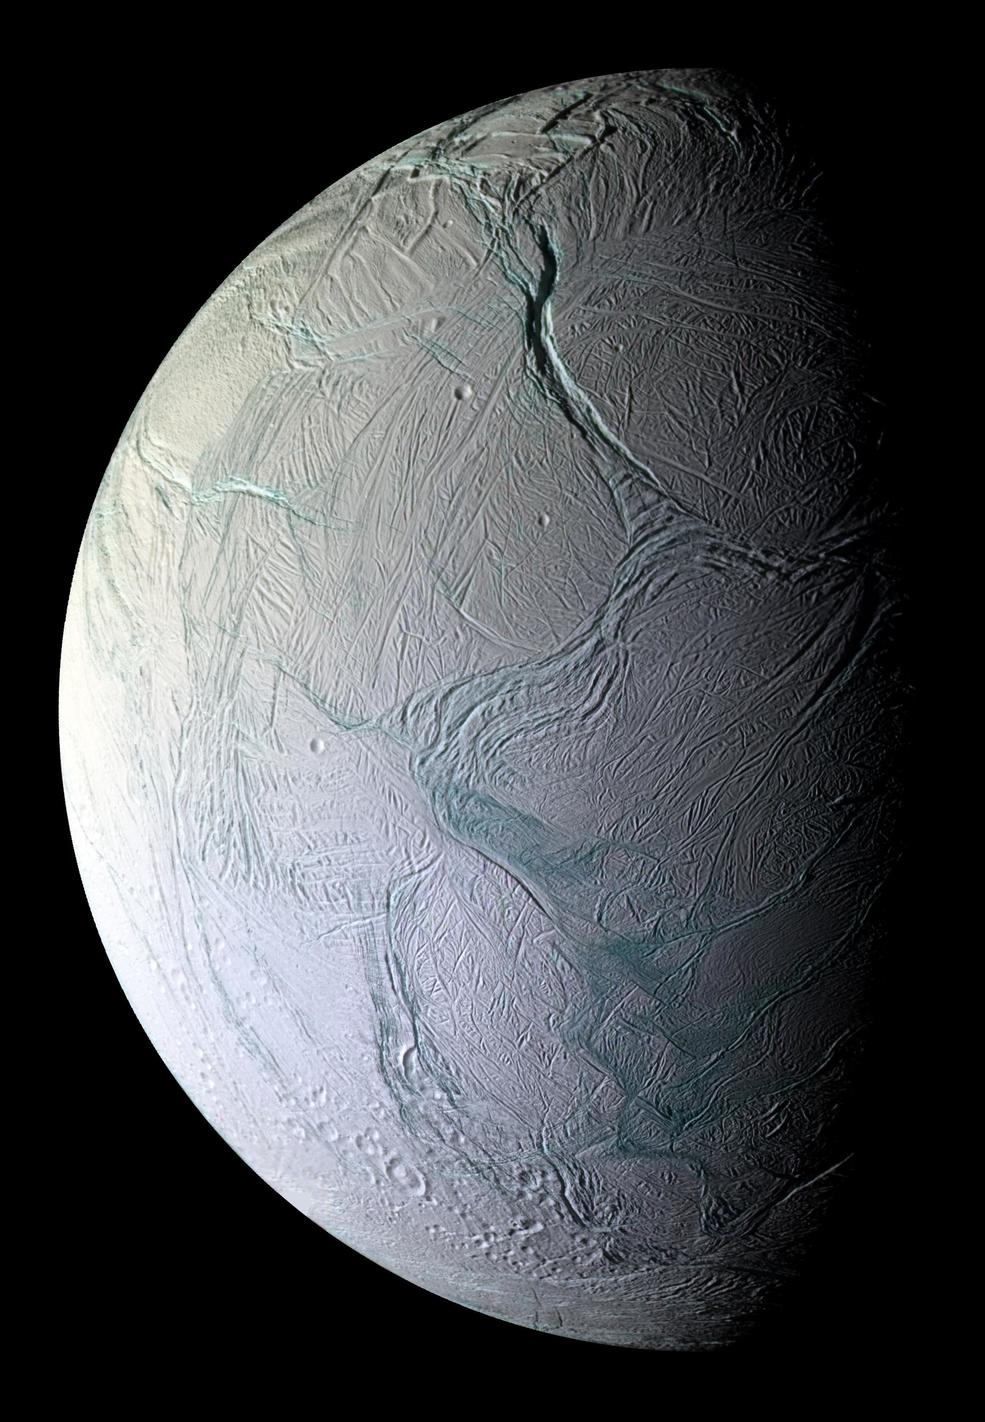 Enceladus, just 500km across, is now known to host a buried ocean of liquid water. - Image Credit: NASA/JPL/Space Science Institute